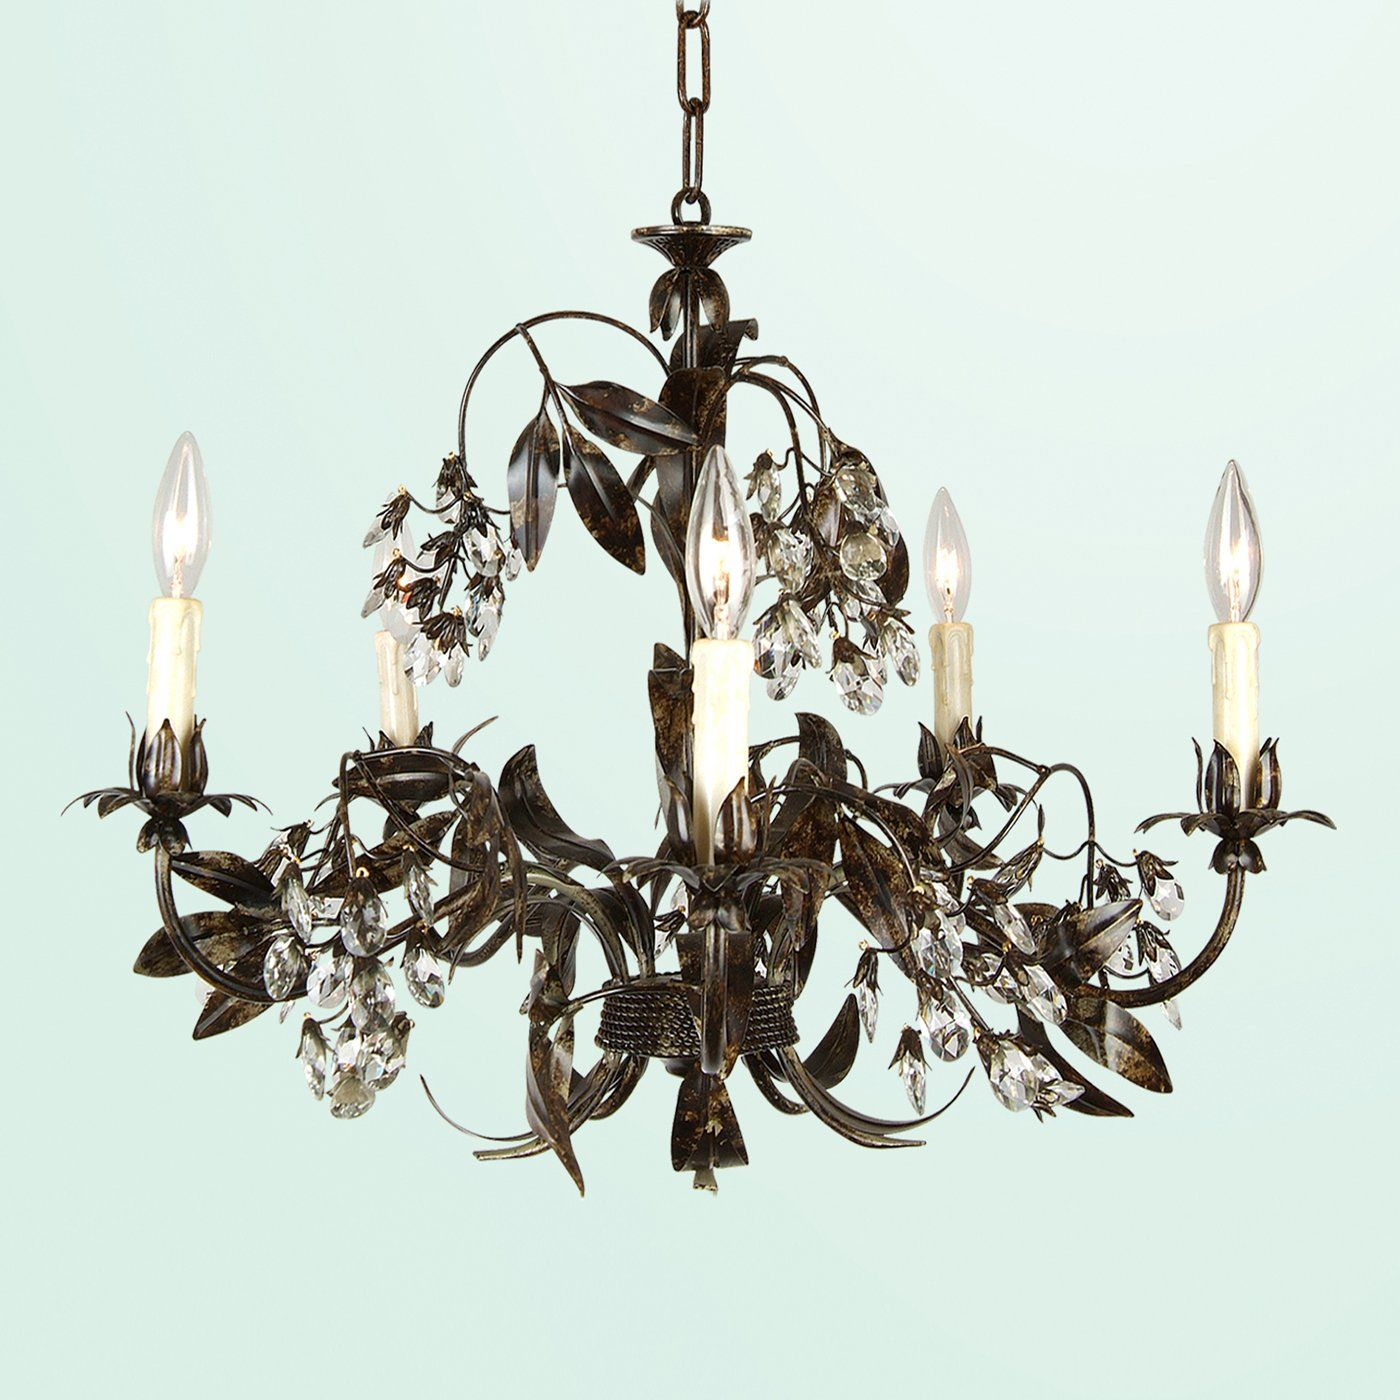 lowes lighting chandelier | Bethel International FAL78-A2 6 Light ...